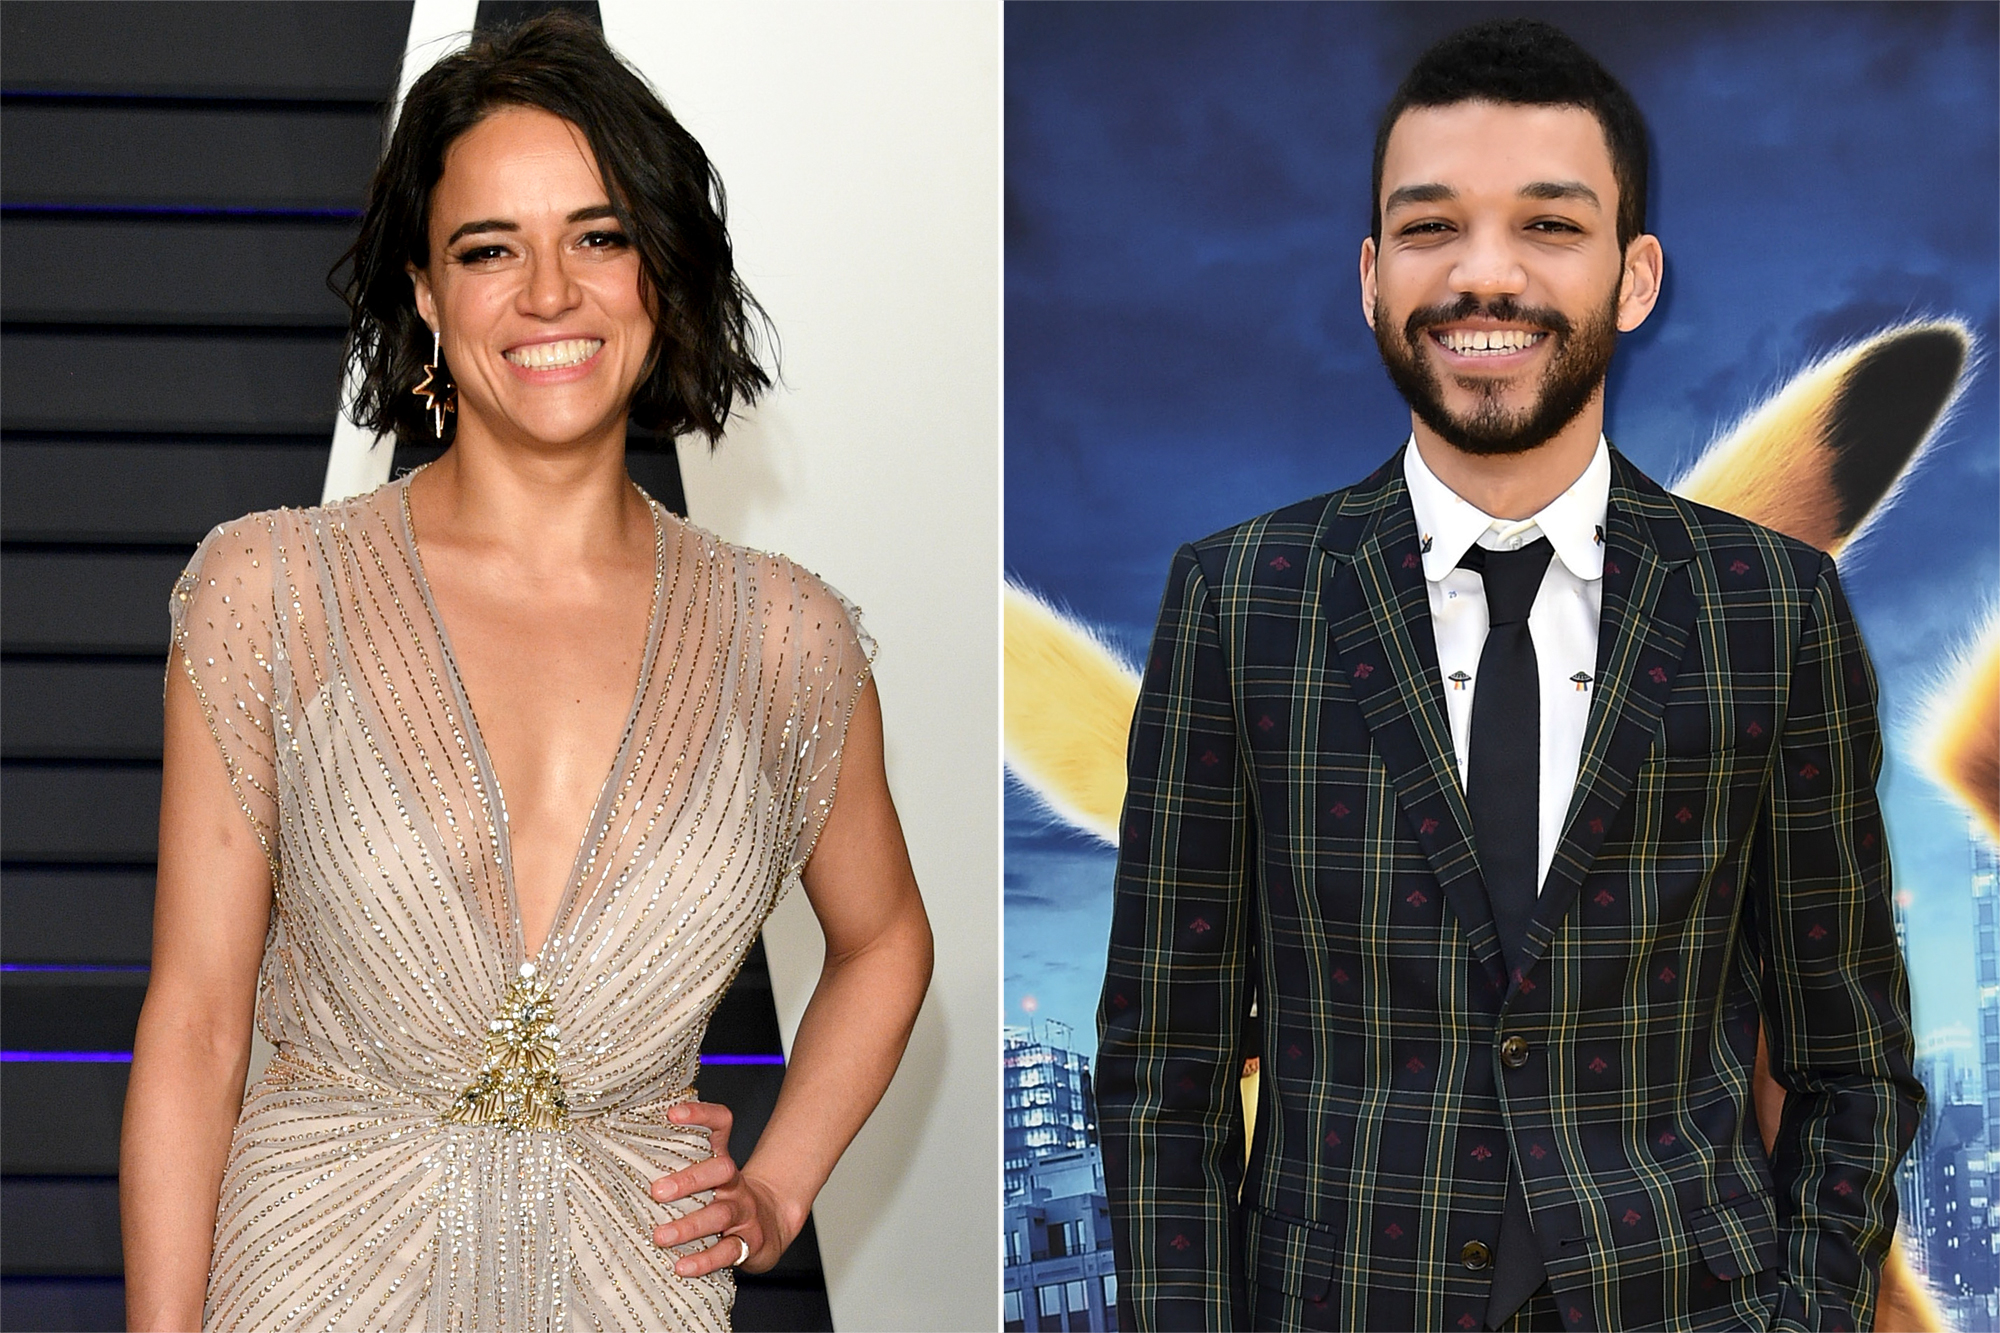 Michelle Rodriguez, Justice Smith